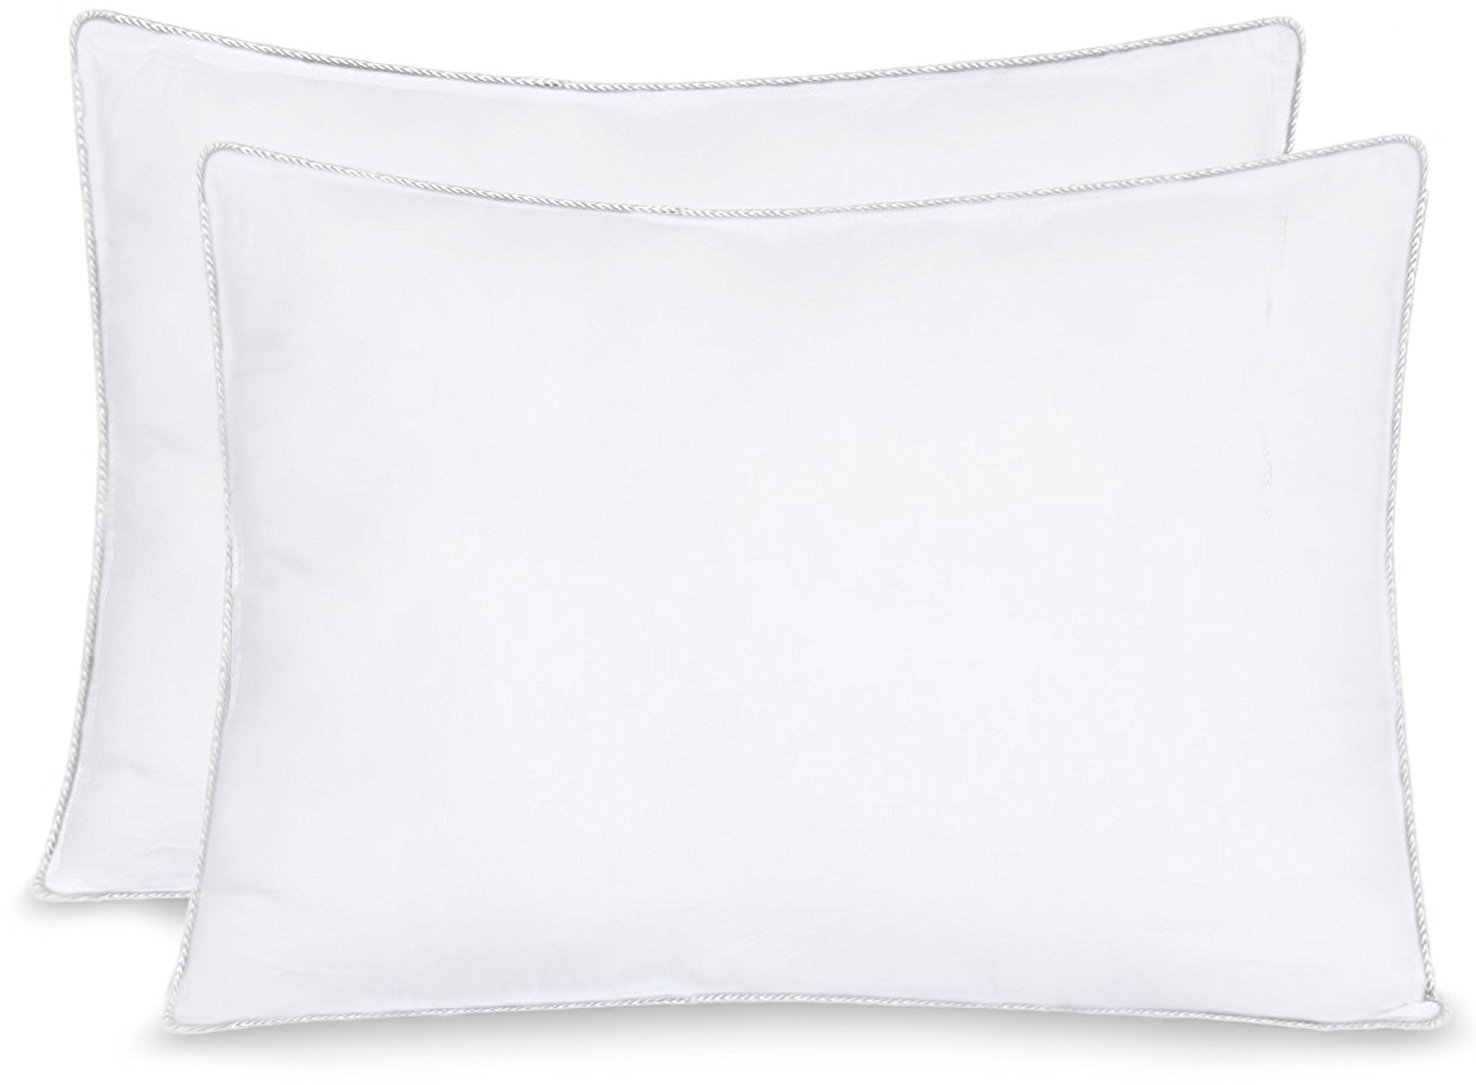 "Equinox 2-Pack Bed Pillows - 20"" x 26"" - 900GSM Ultra Soft Sand Washed Cover, with Lofty Microfiber Filling"